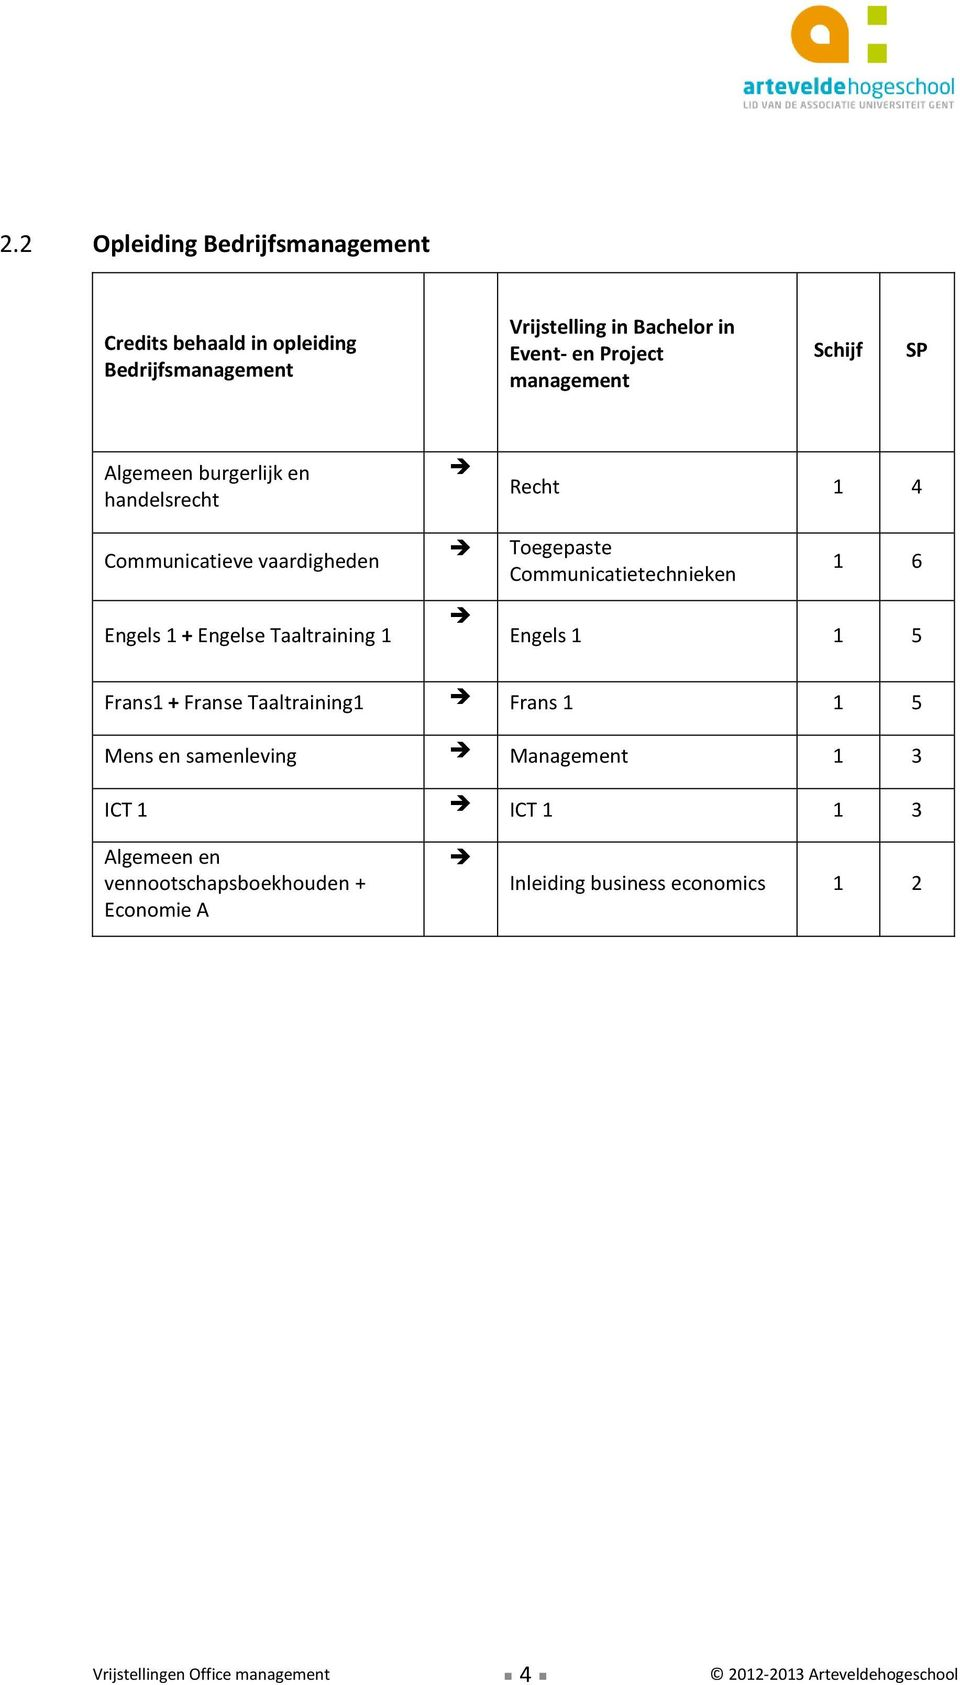 Communicatietechnieken 1 6 Engels 1 1 5 Frans1 + Franse Taaltraining1 Frans 1 1 5 Mens en samenleving Management 1 3 ICT 1 ICT 1